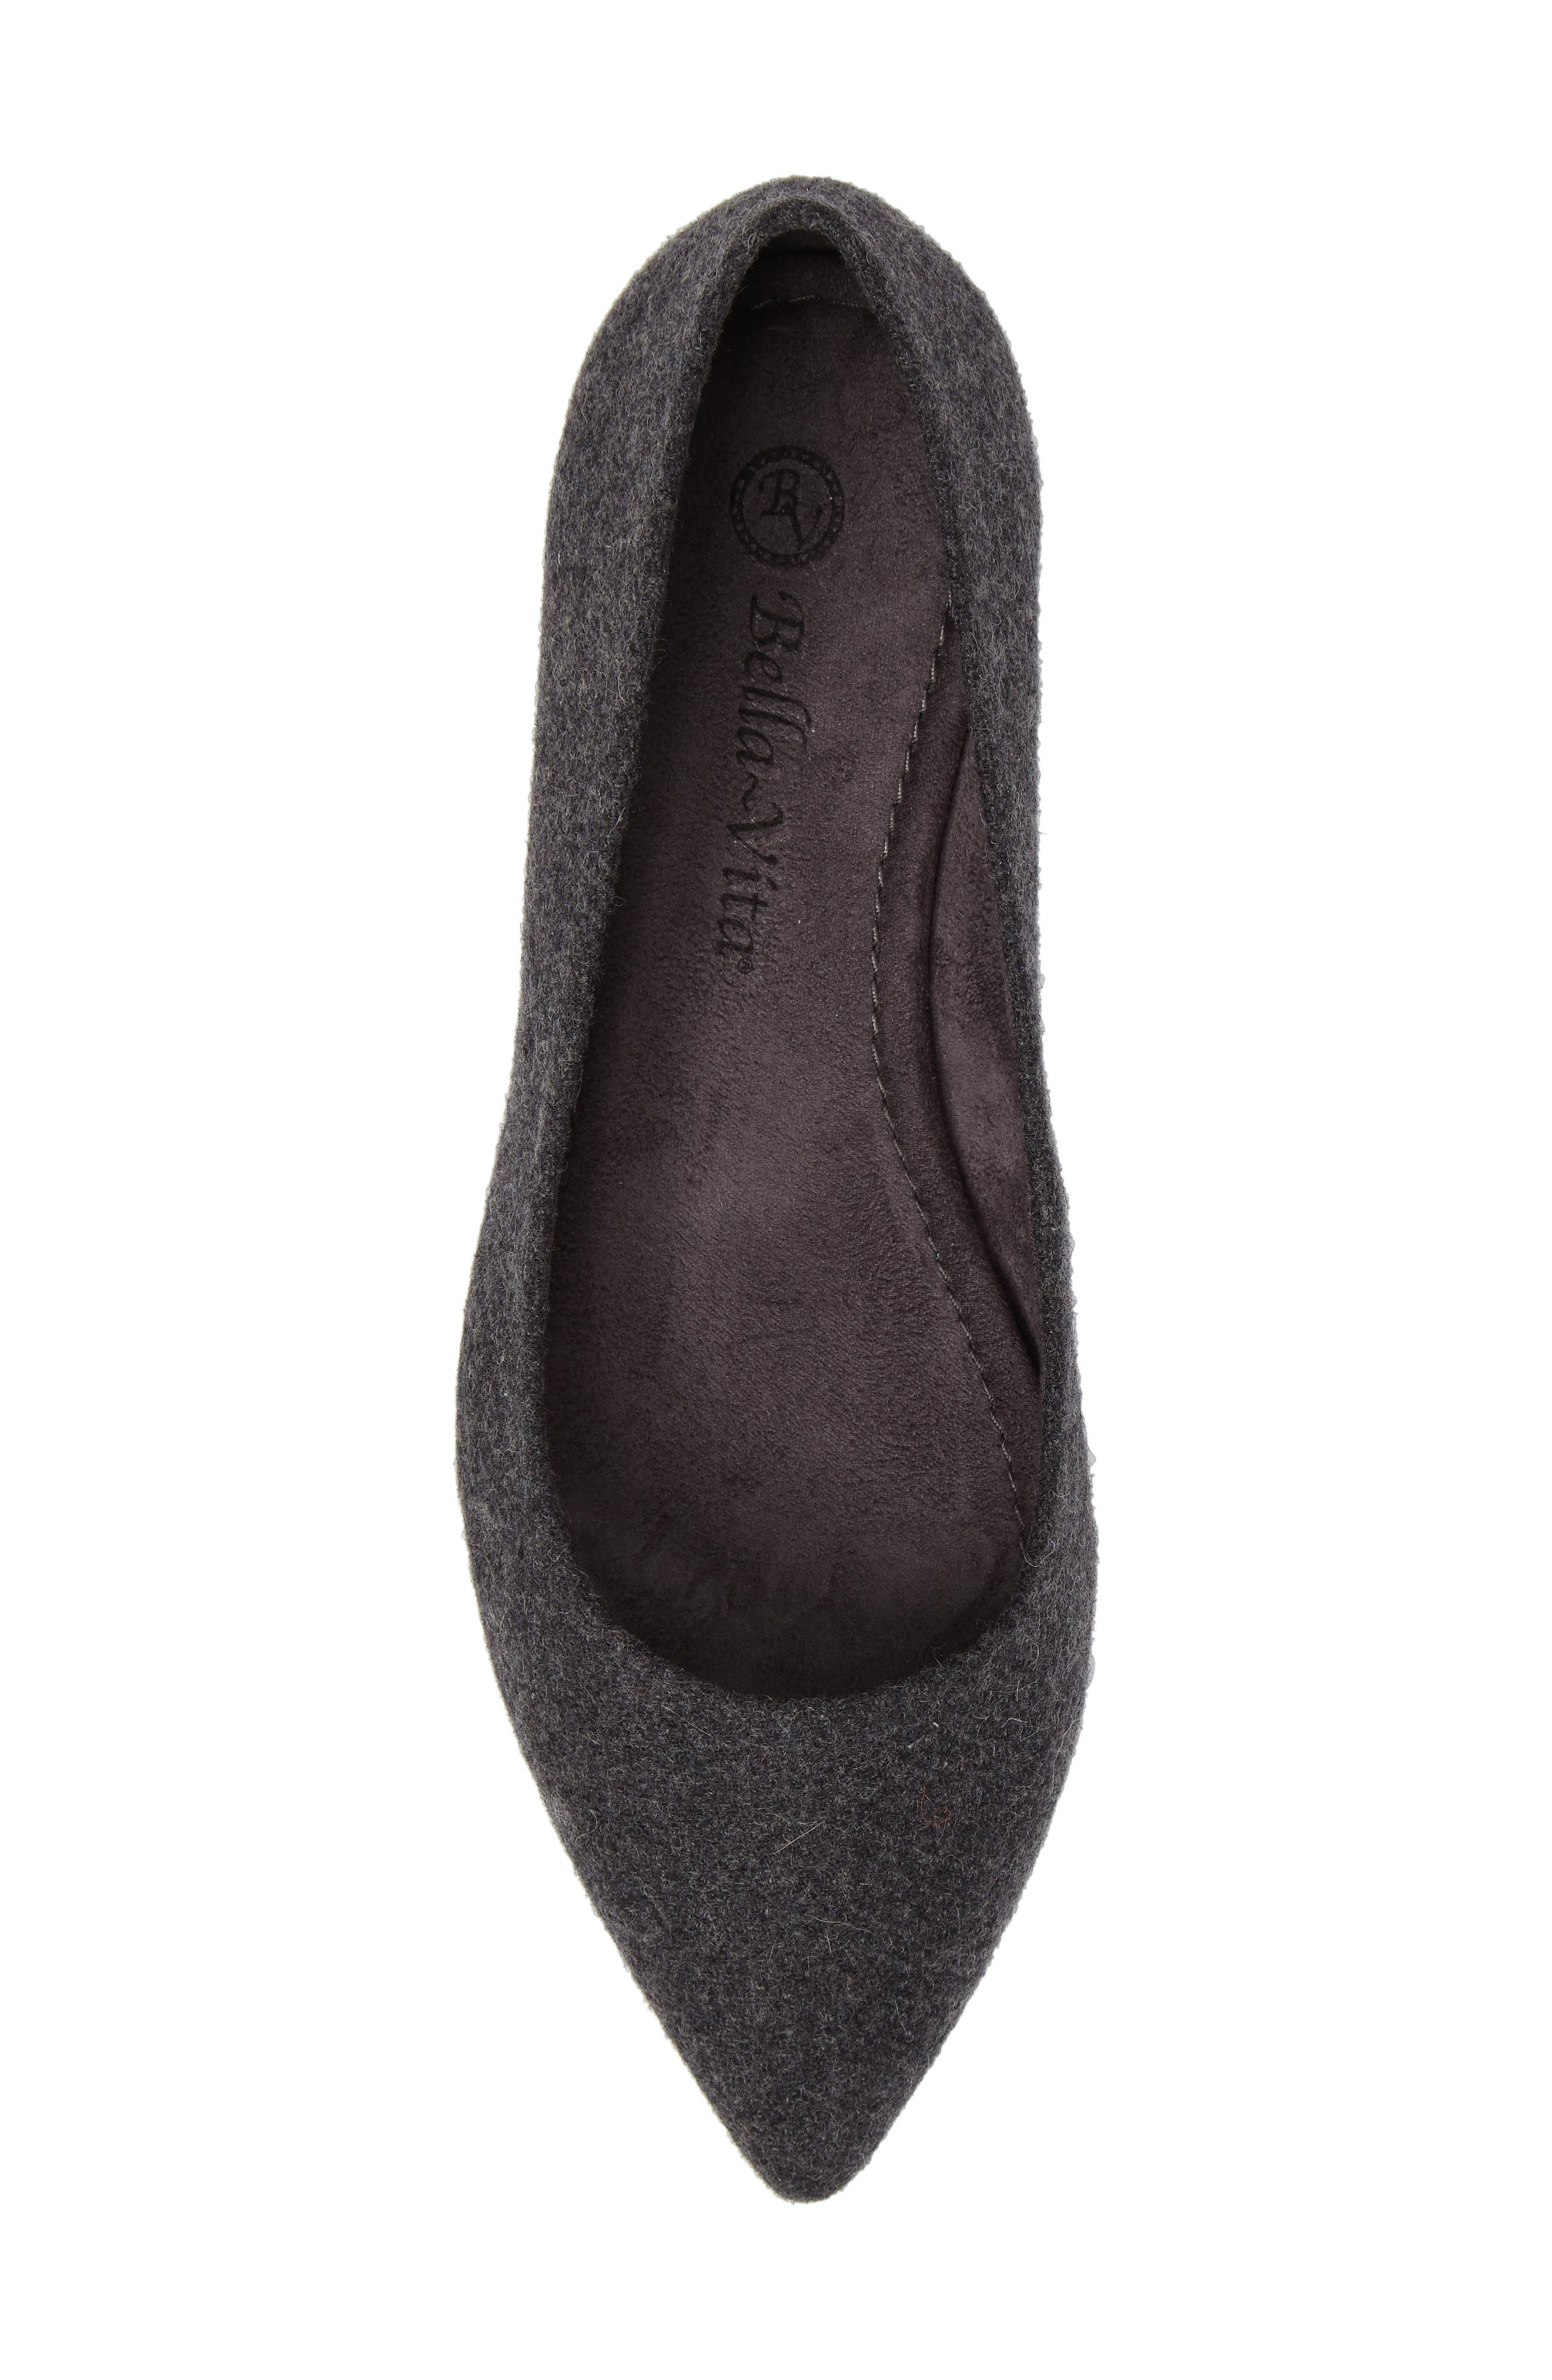 BELLA VITA, 'Vivien' Pointy Toe Flat, Alternate thumbnail 5, color, GREY FLANNEL FABRIC